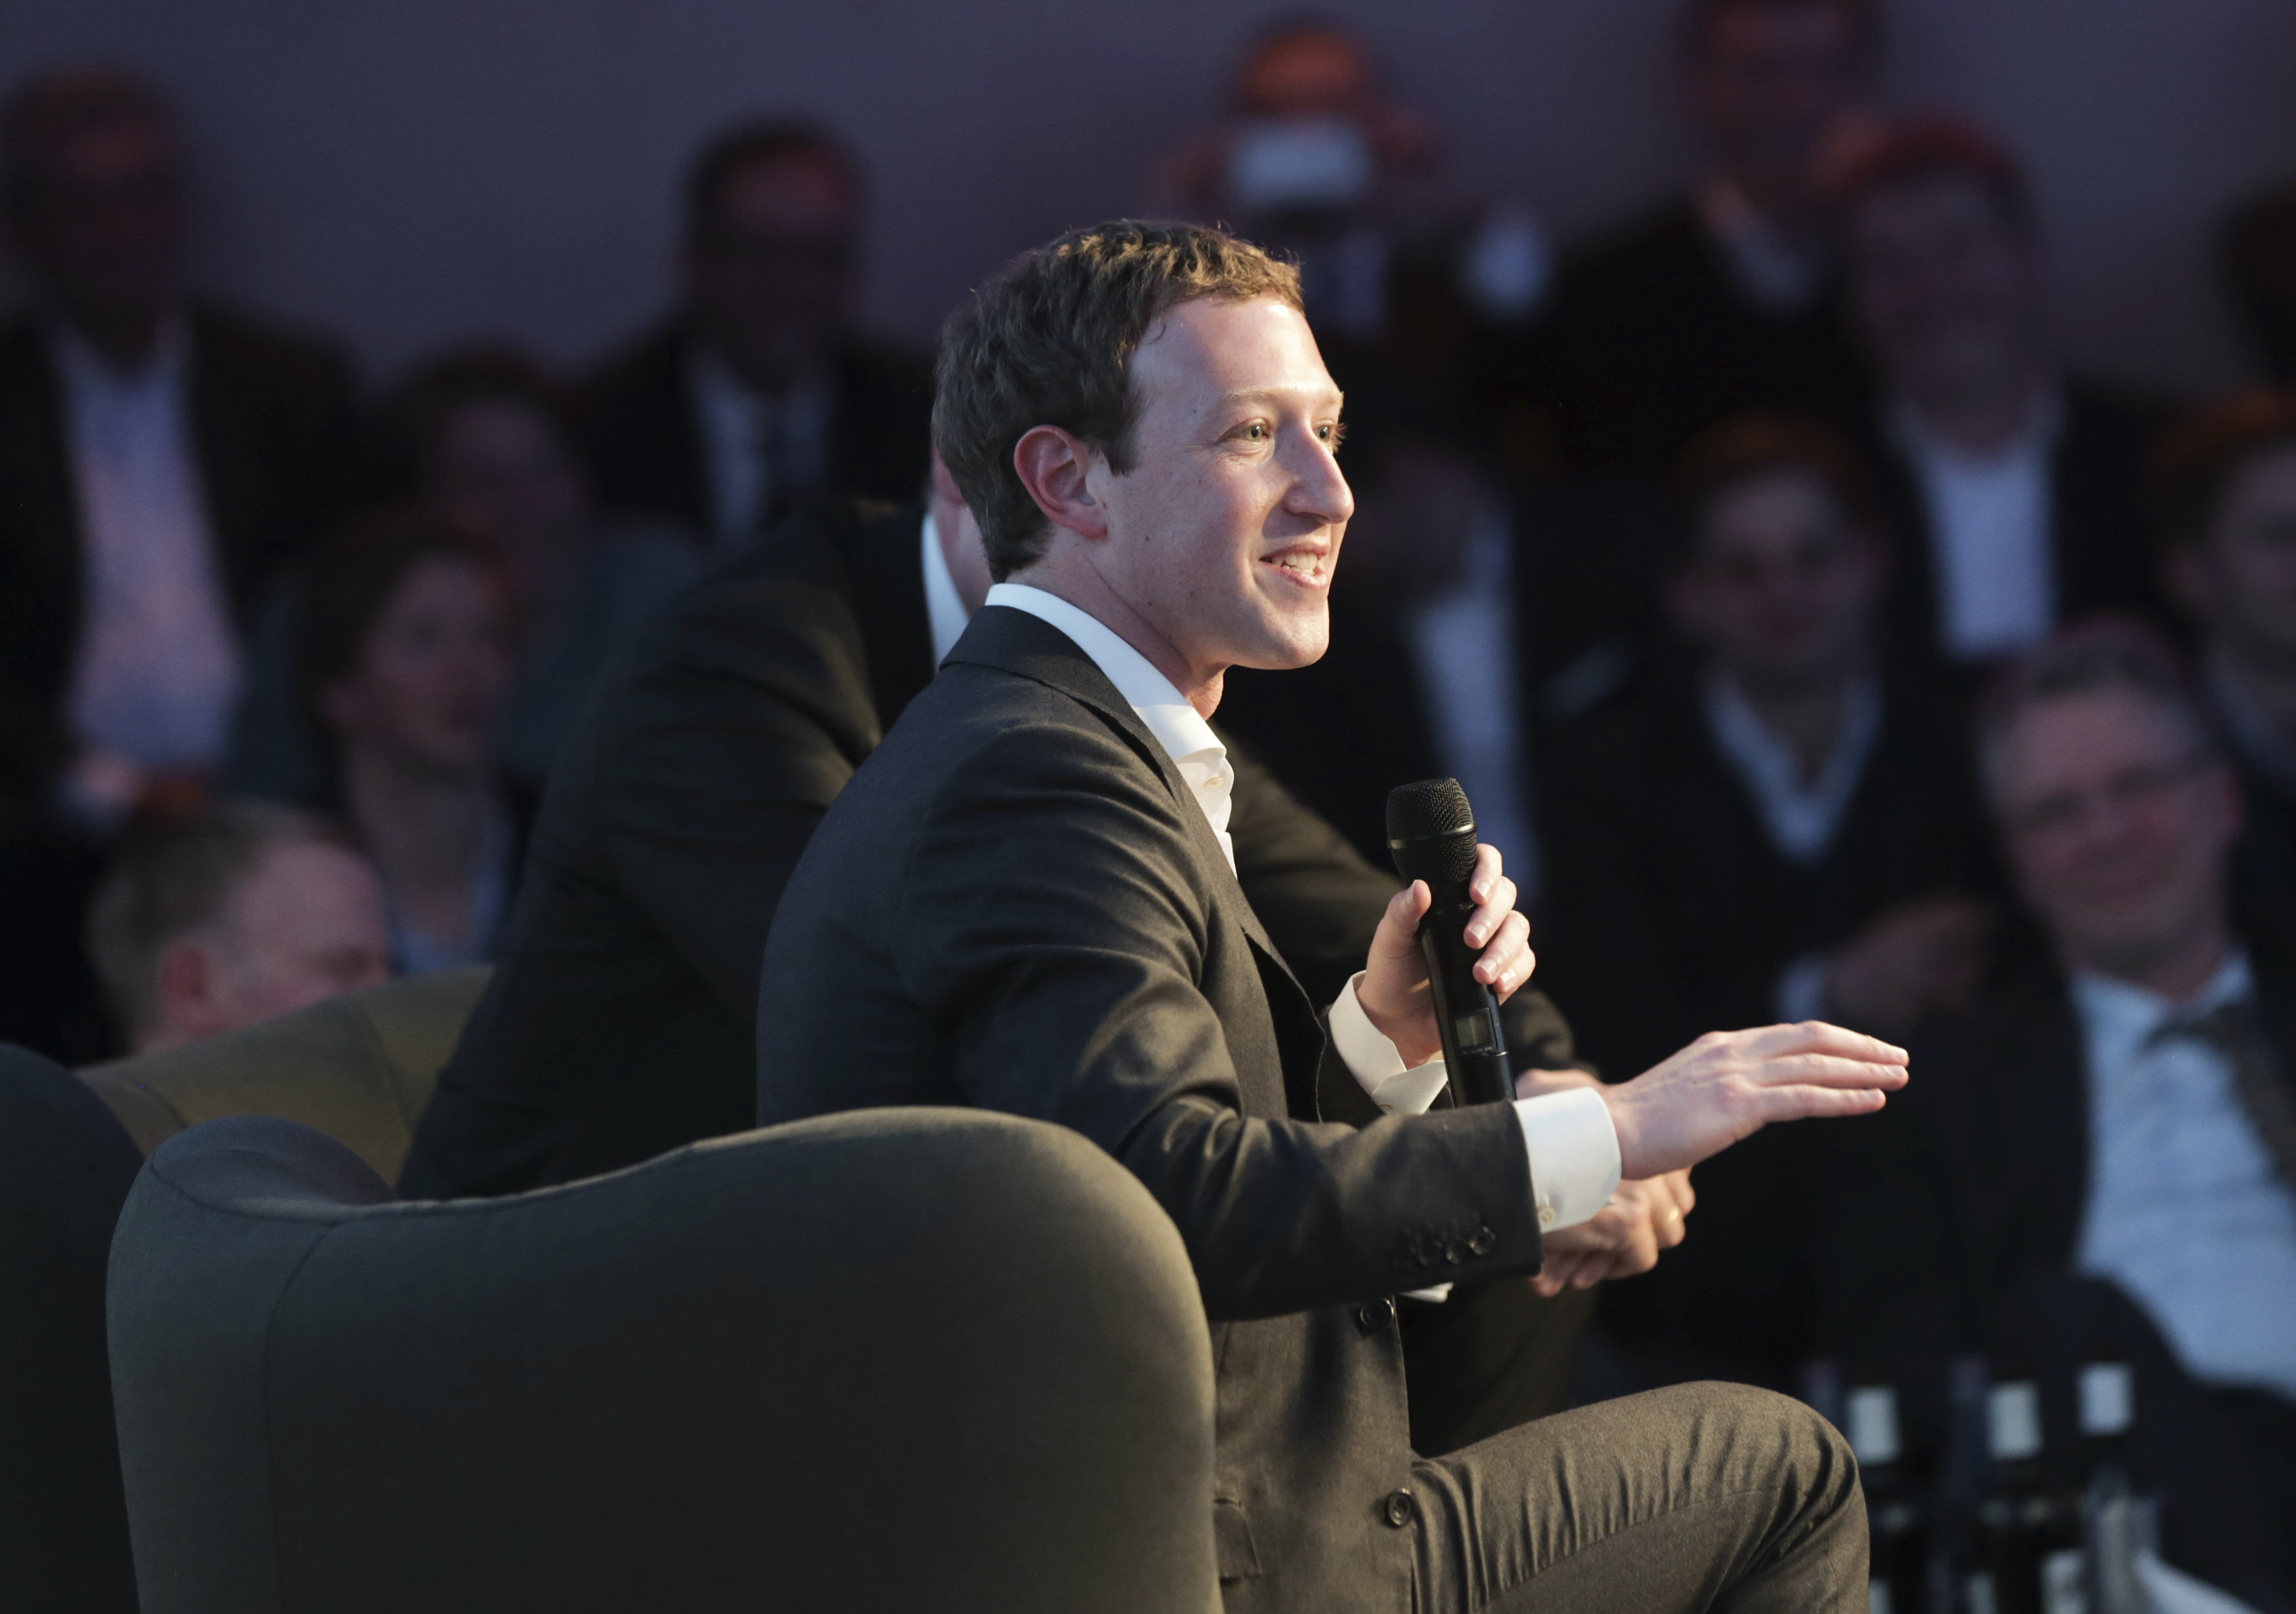 Facebook founder and CEO Zuckerberg delivers a speech at the awards ceremony of the newly established Axel Springer Award in Berlin